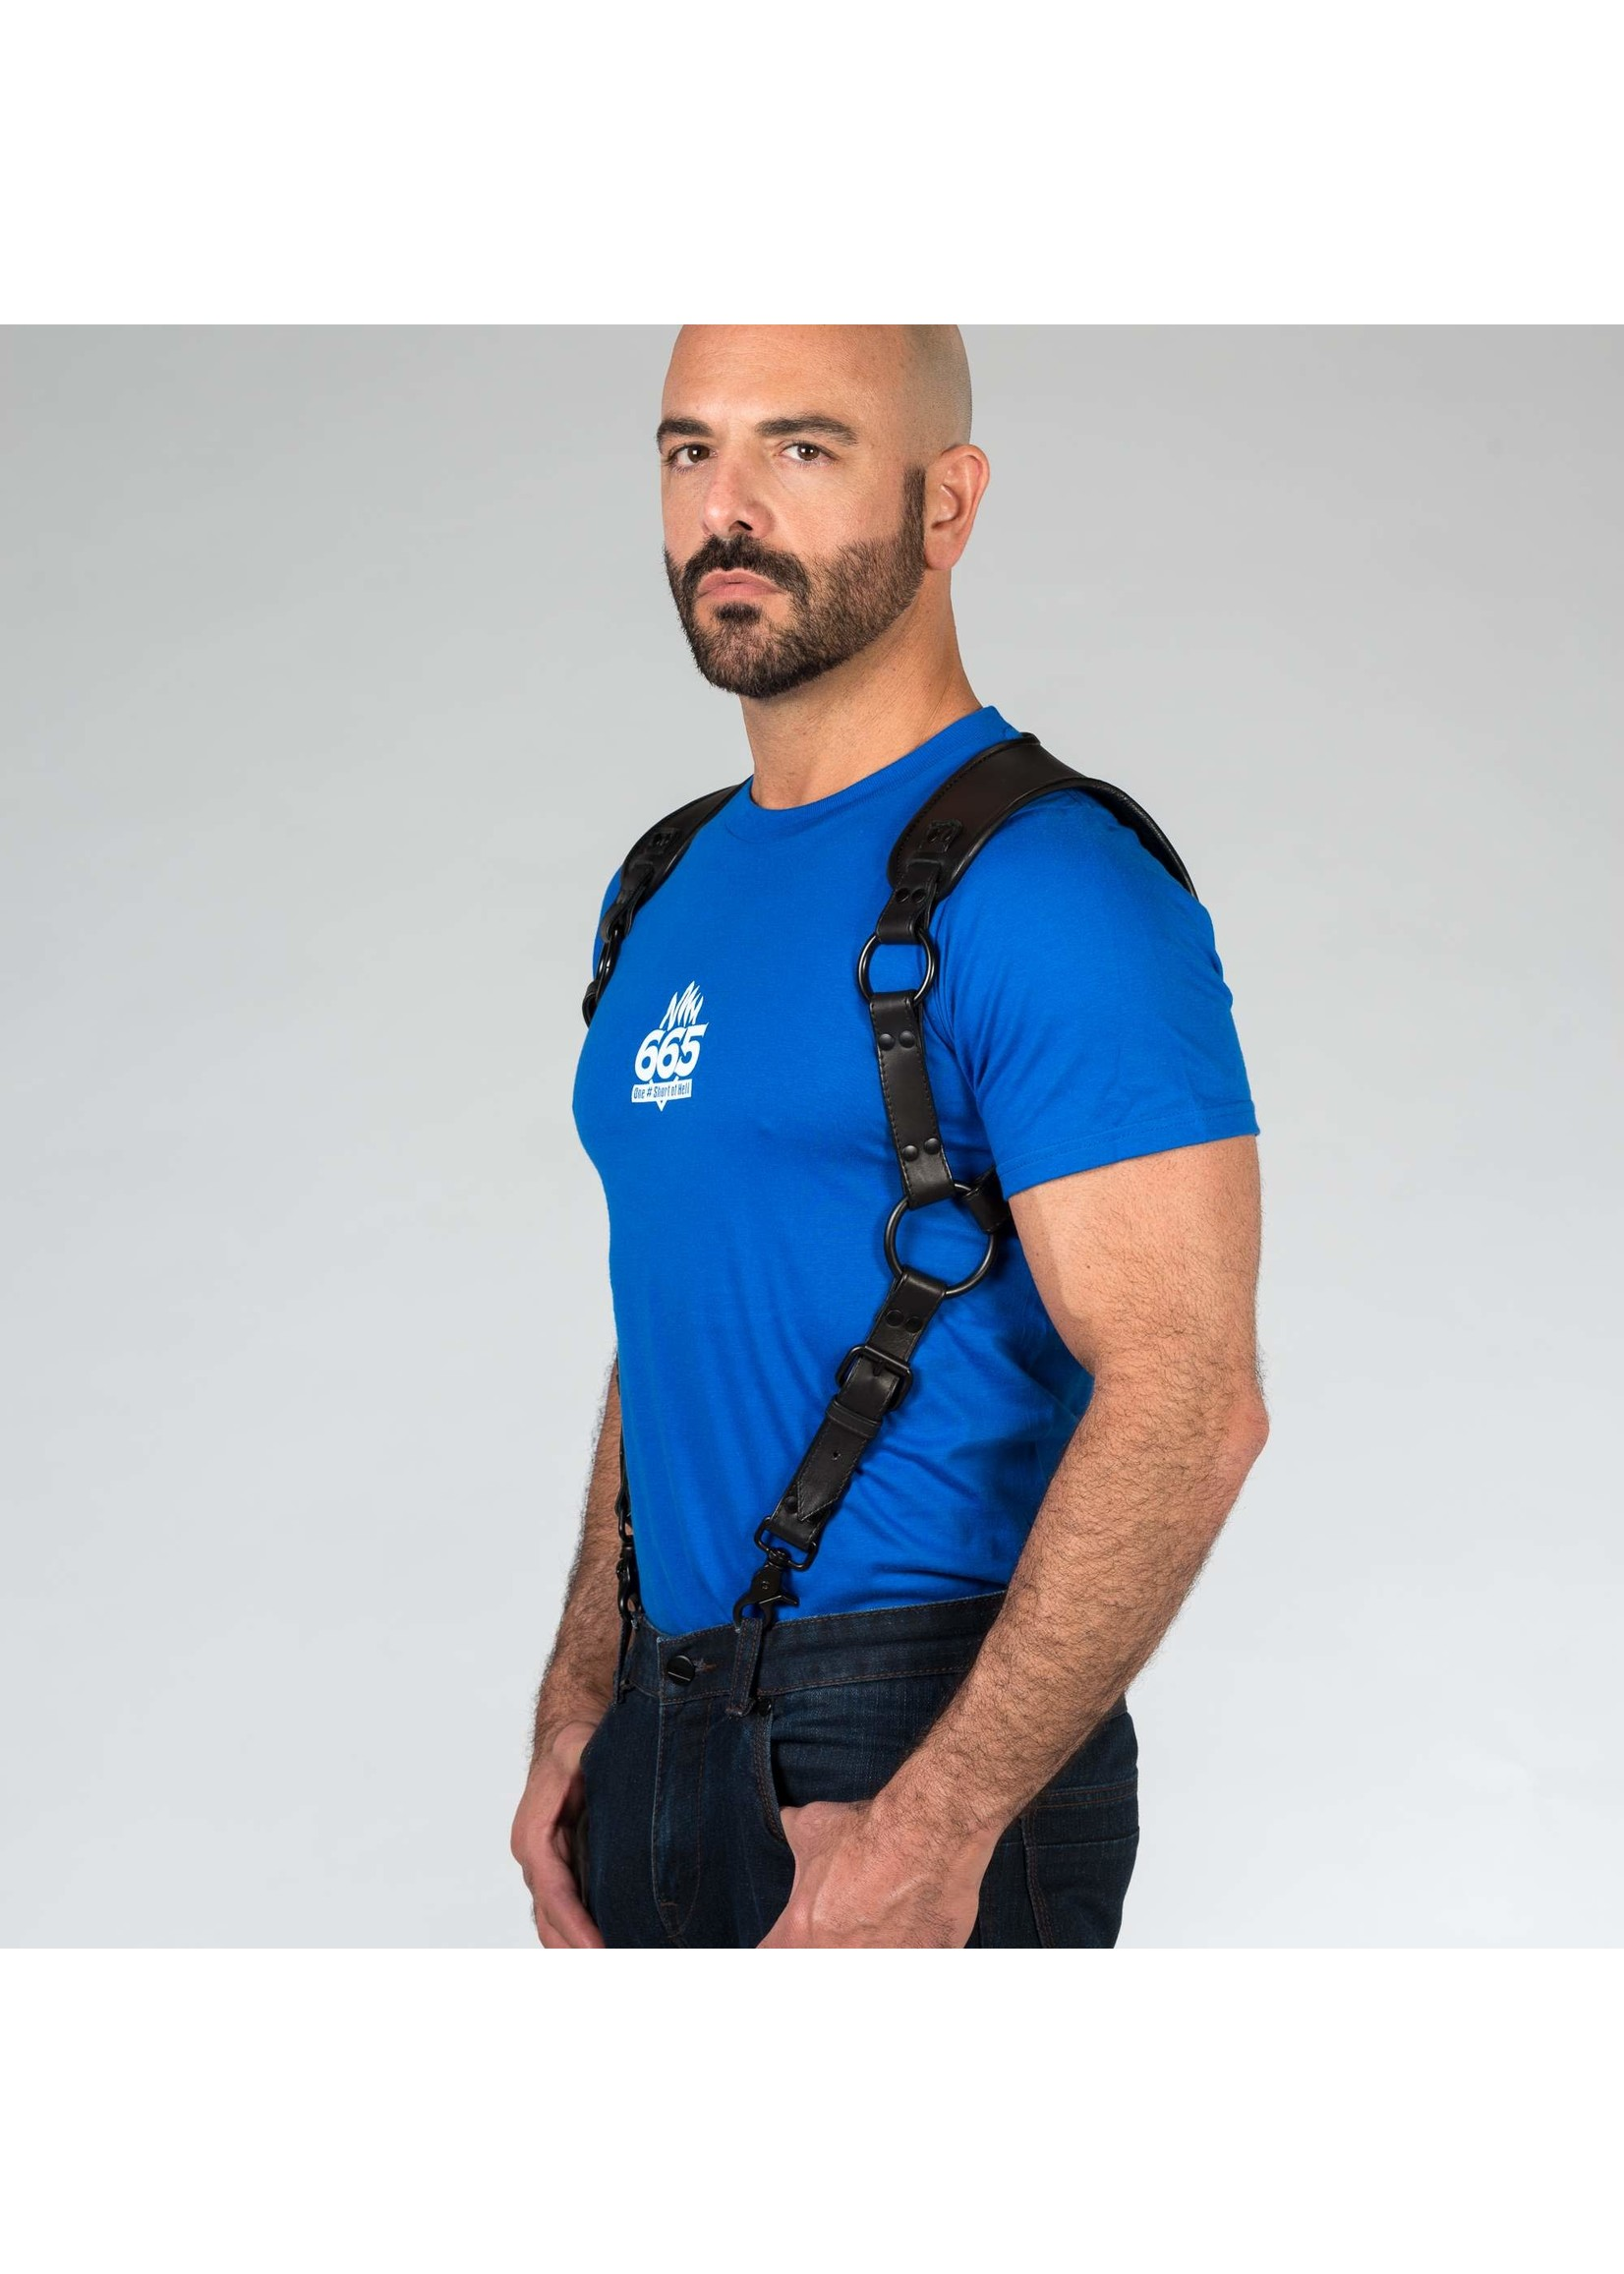 665 Leather 665 Leather Carpenter Harness